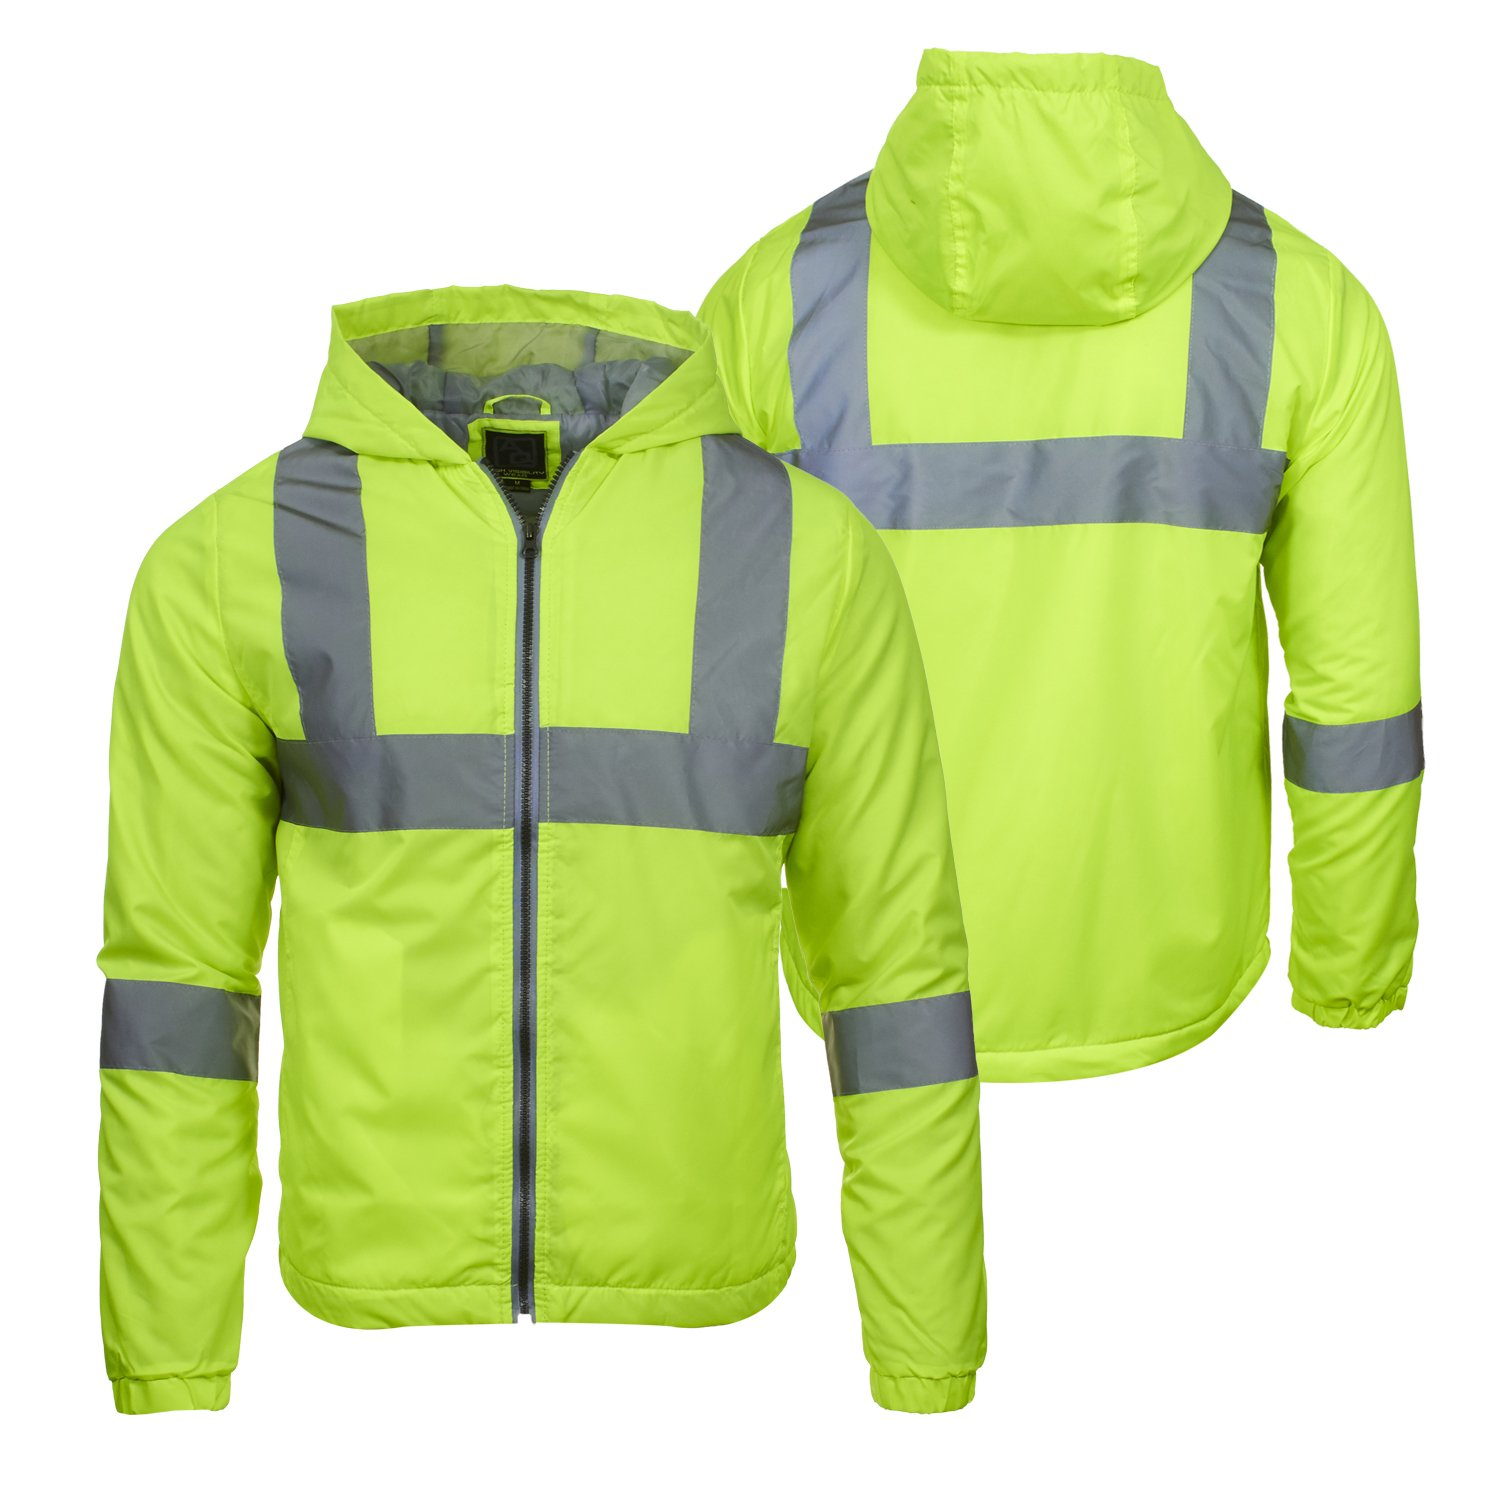 Arctic Quest Mens Lightweight Full Zip Hoodie Jacket Reflective Detail Safety Yellow Large